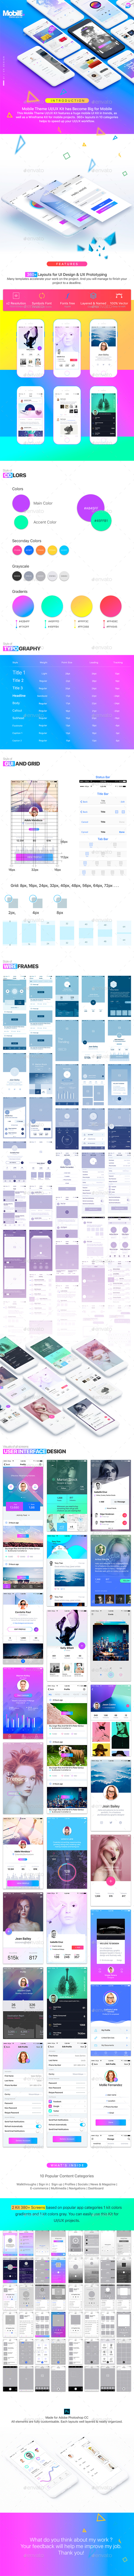 Origin - Mobile UI Kit & iPhone Apps (User Interfaces)